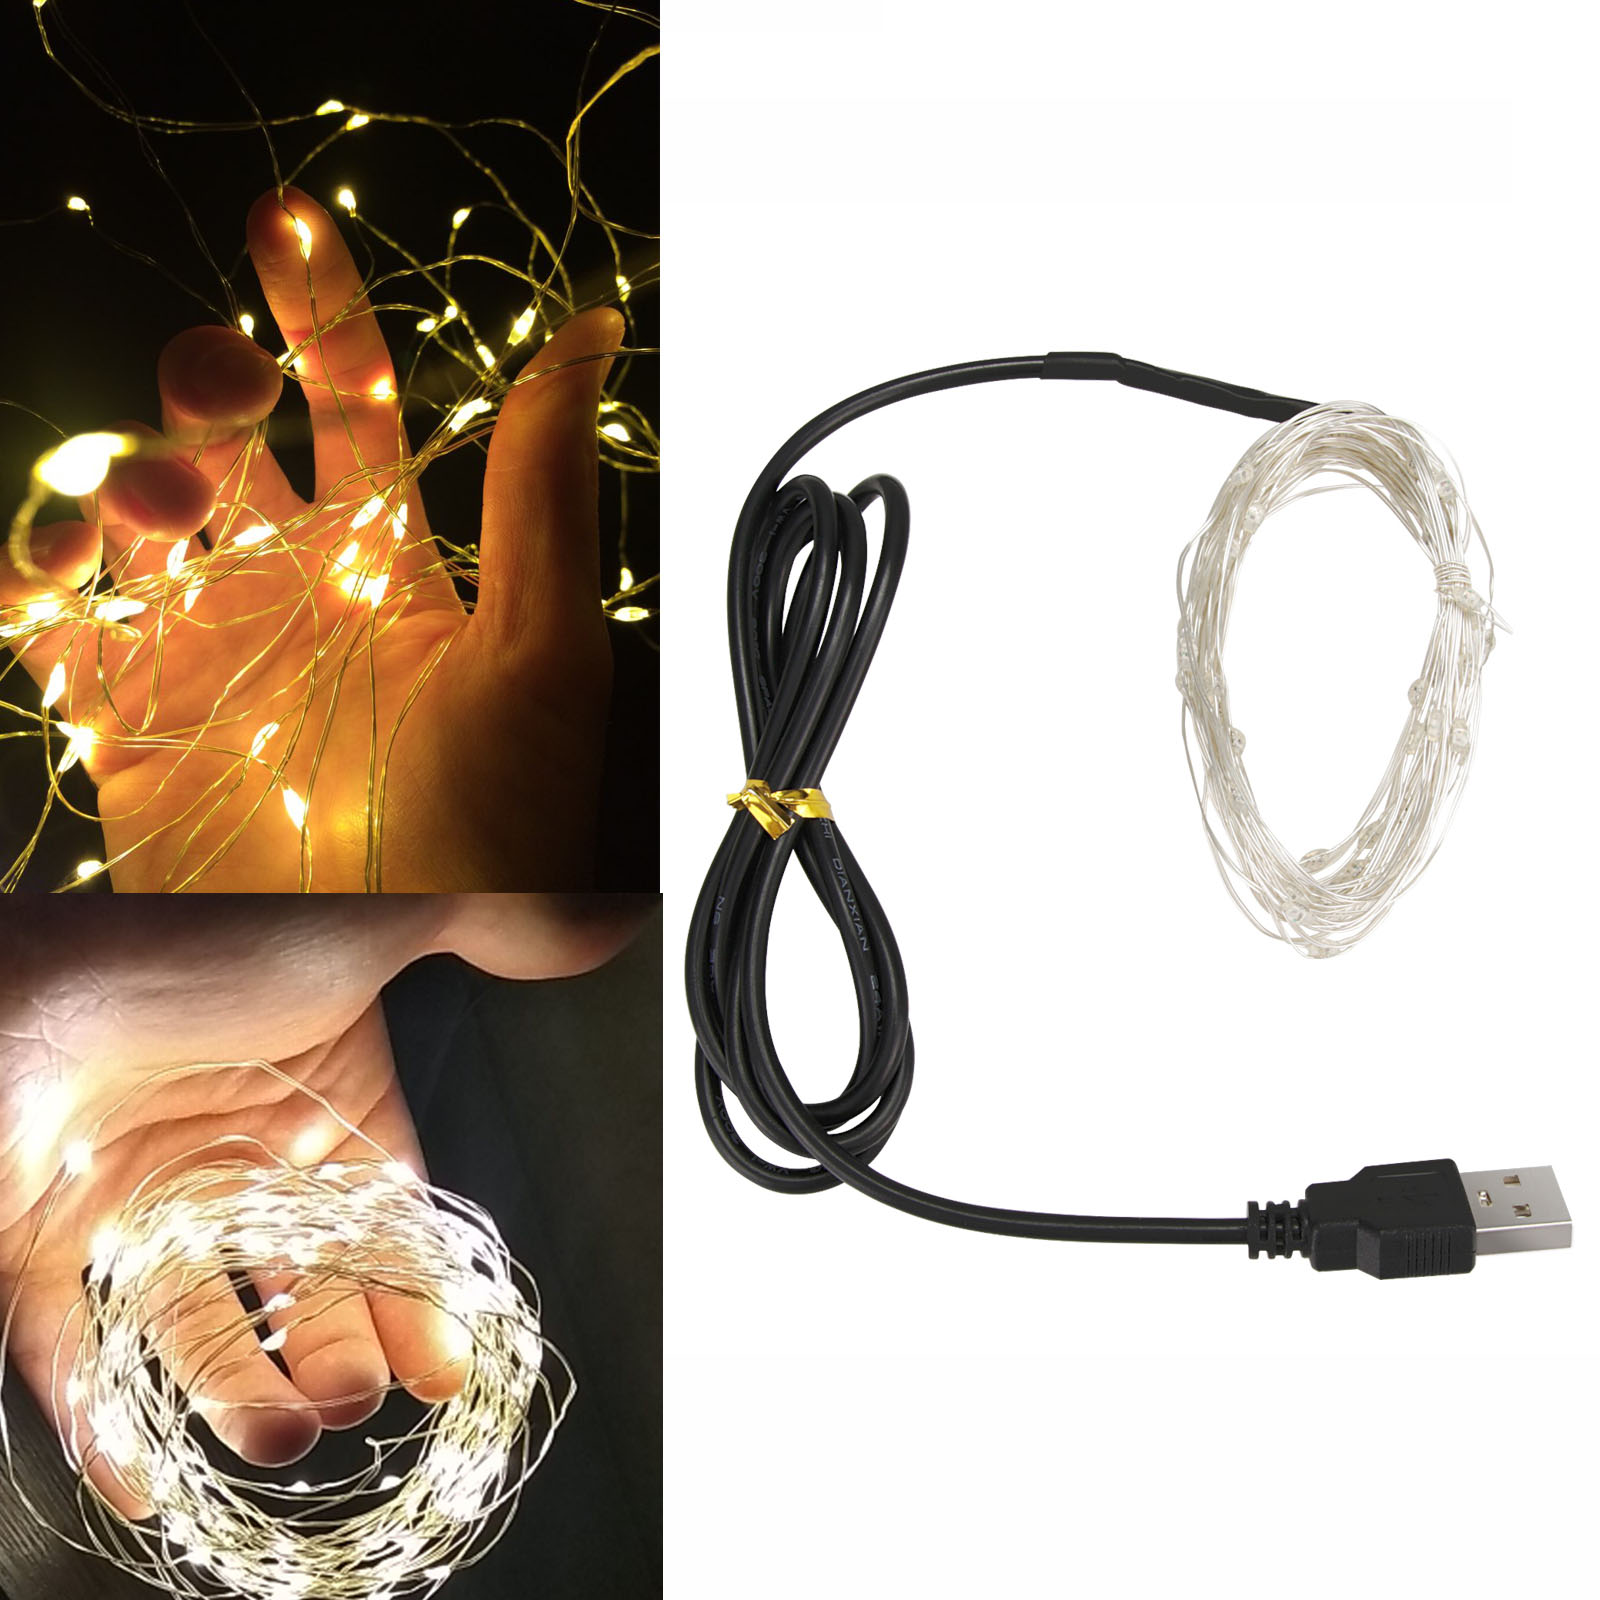 USB Powered 5V LED String Lights 10M 100LED Sliver Cooper Wire Garland Home Christmas Wedding Xmas Party Decoration Fairy Light